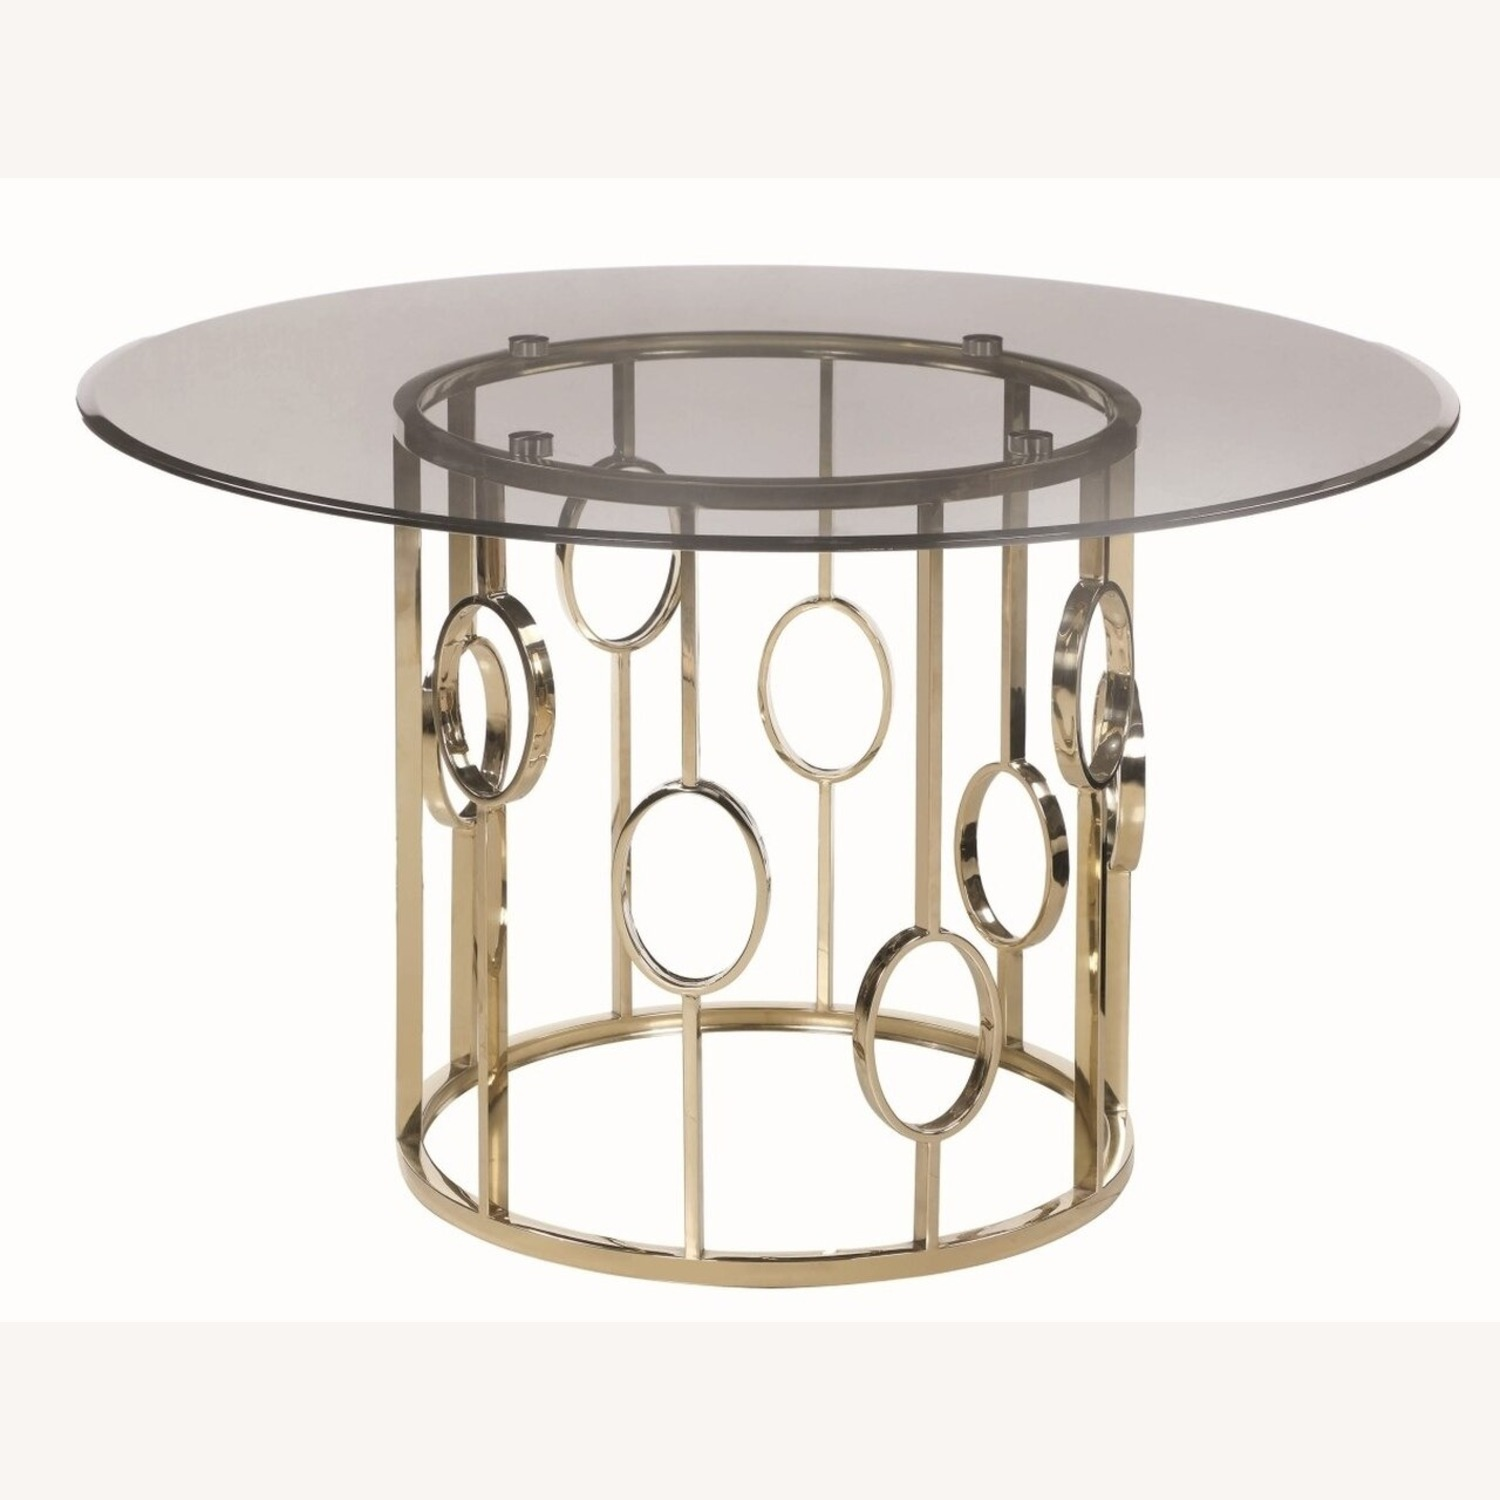 Elegant Round Dining Table In Smoke Glass Top - image-0